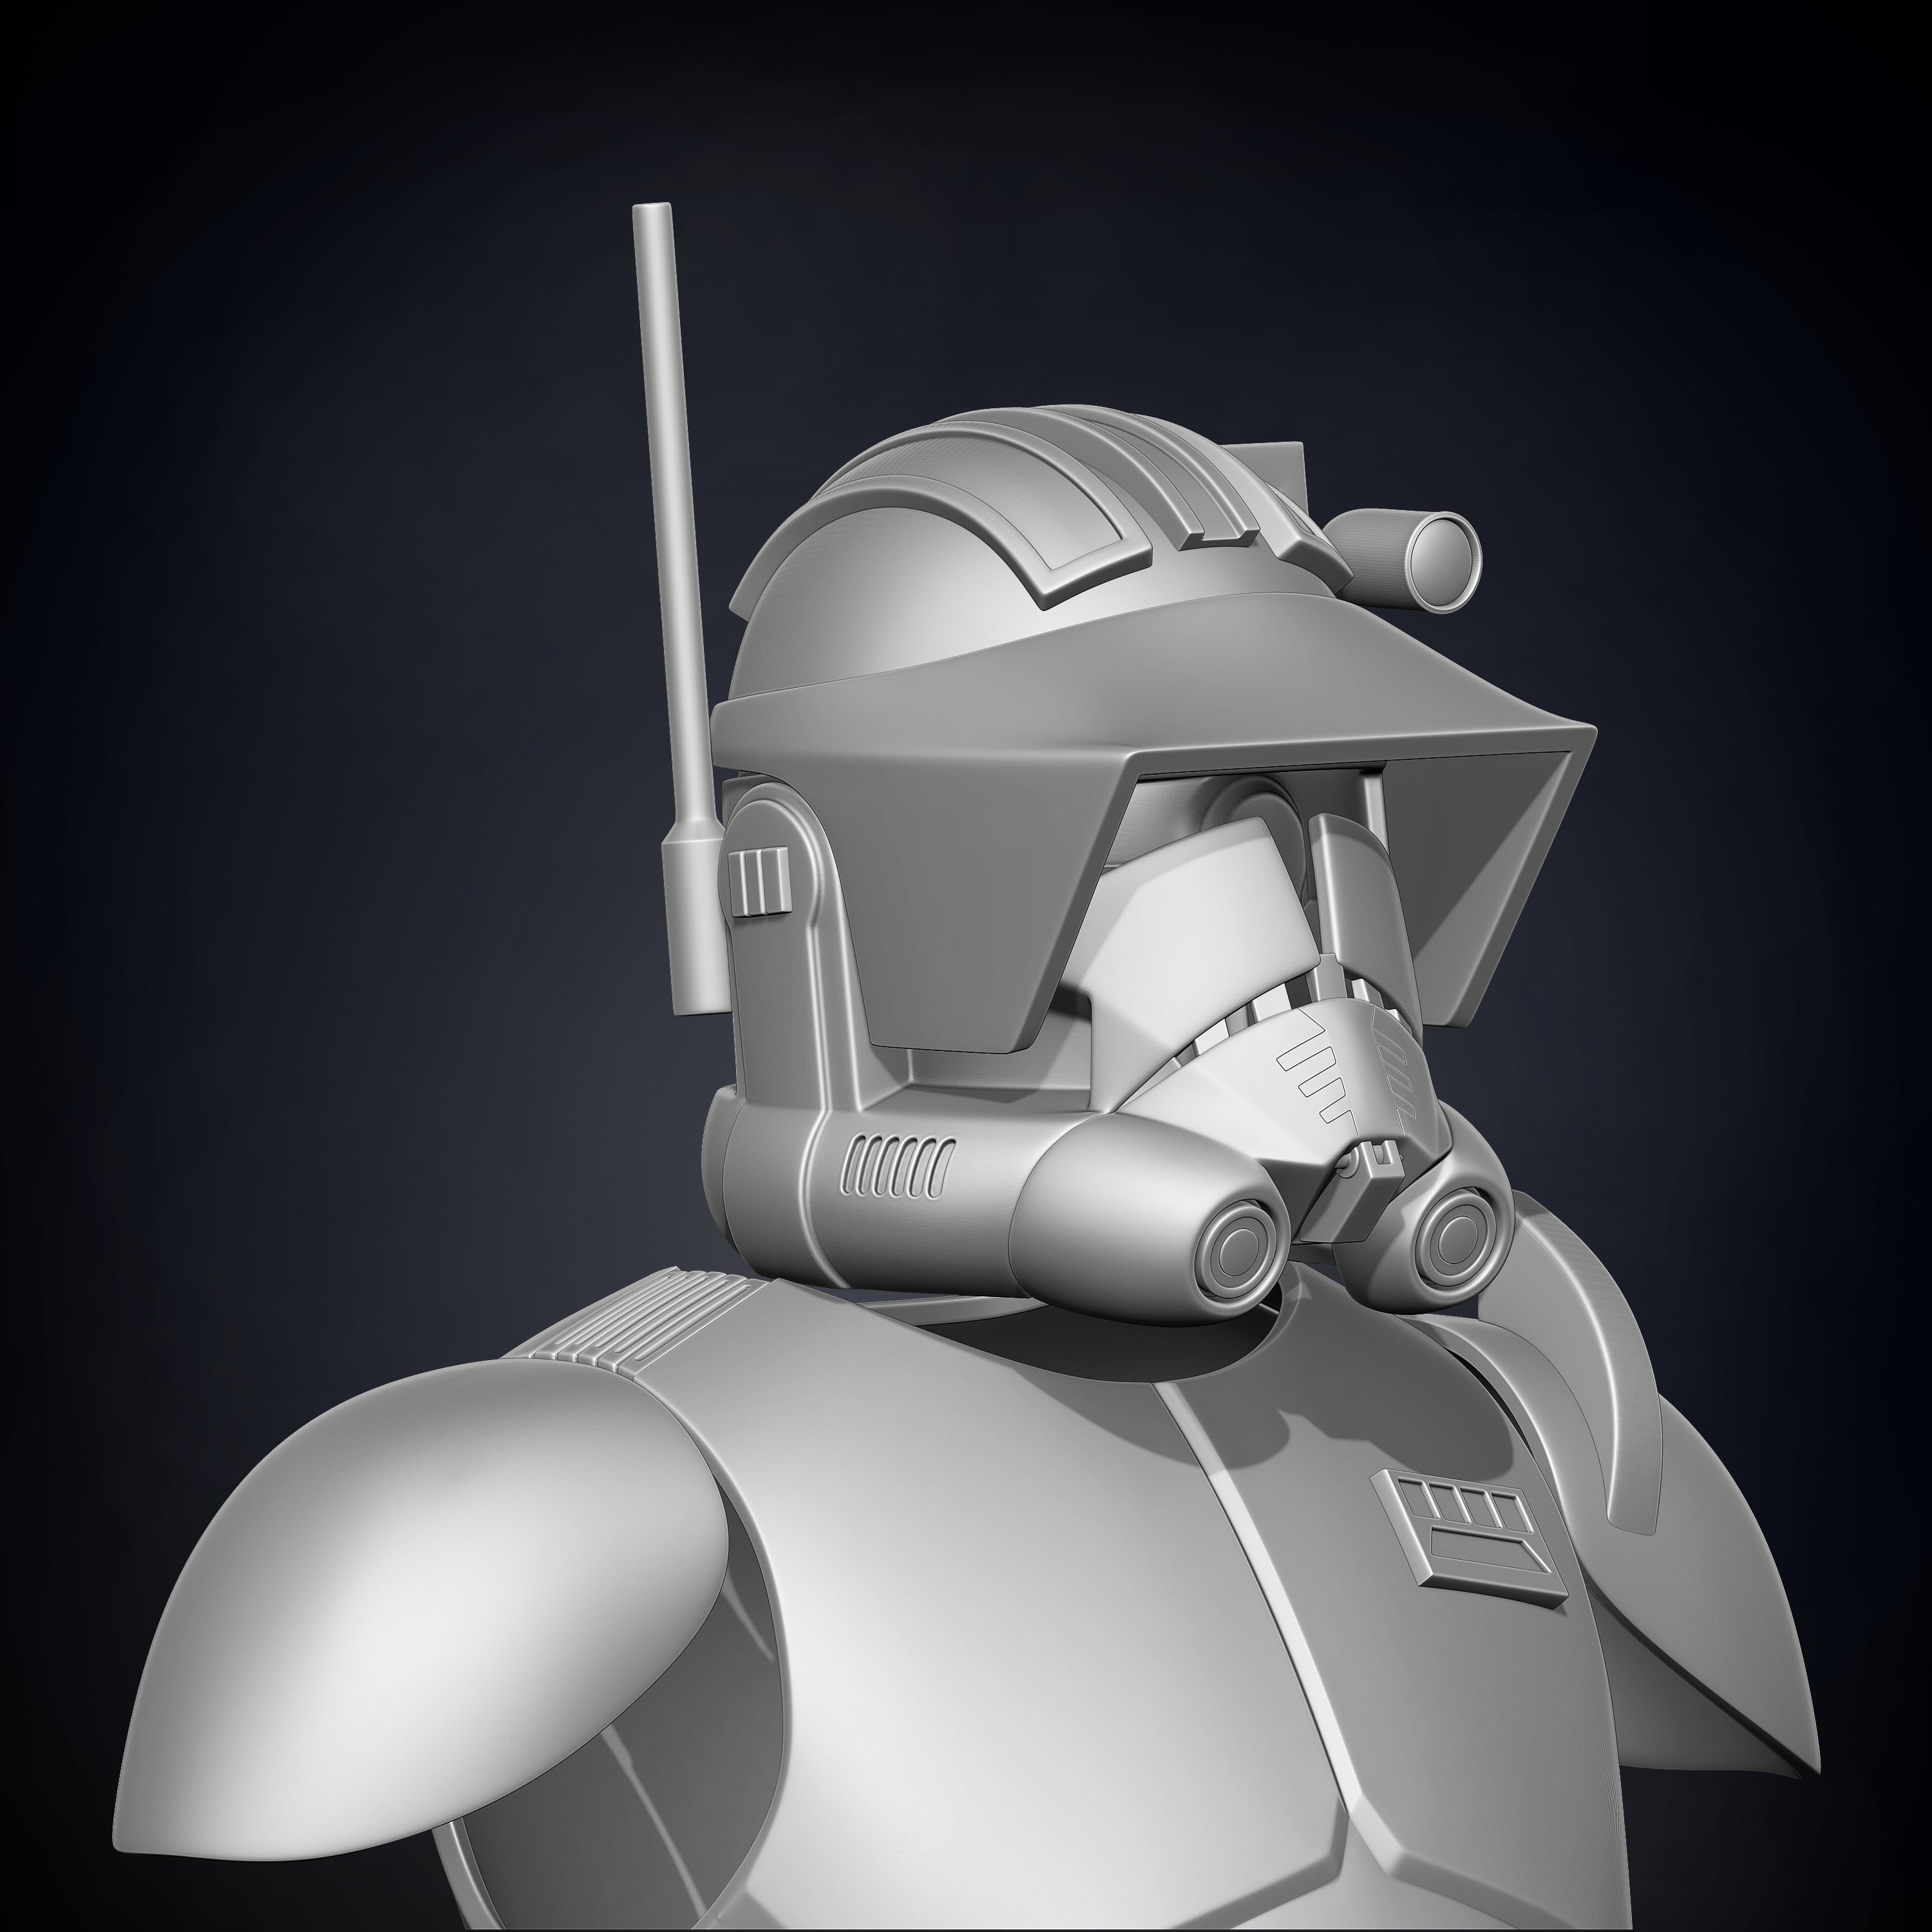 Animated Commander Cody Armor Accessories - 3D Print Files - The Galactic Armory